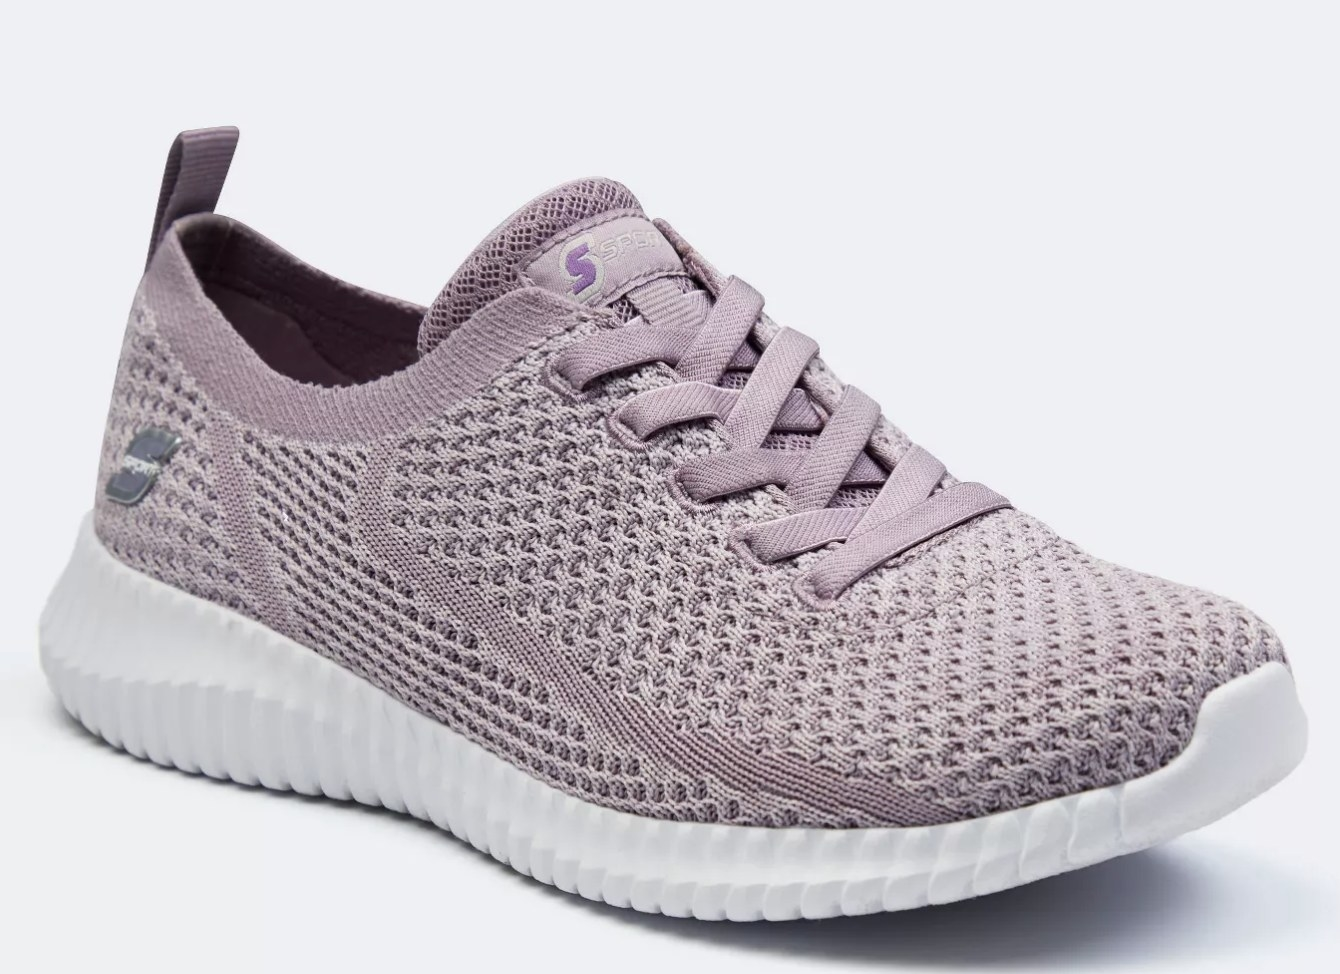 The shoe in lavender